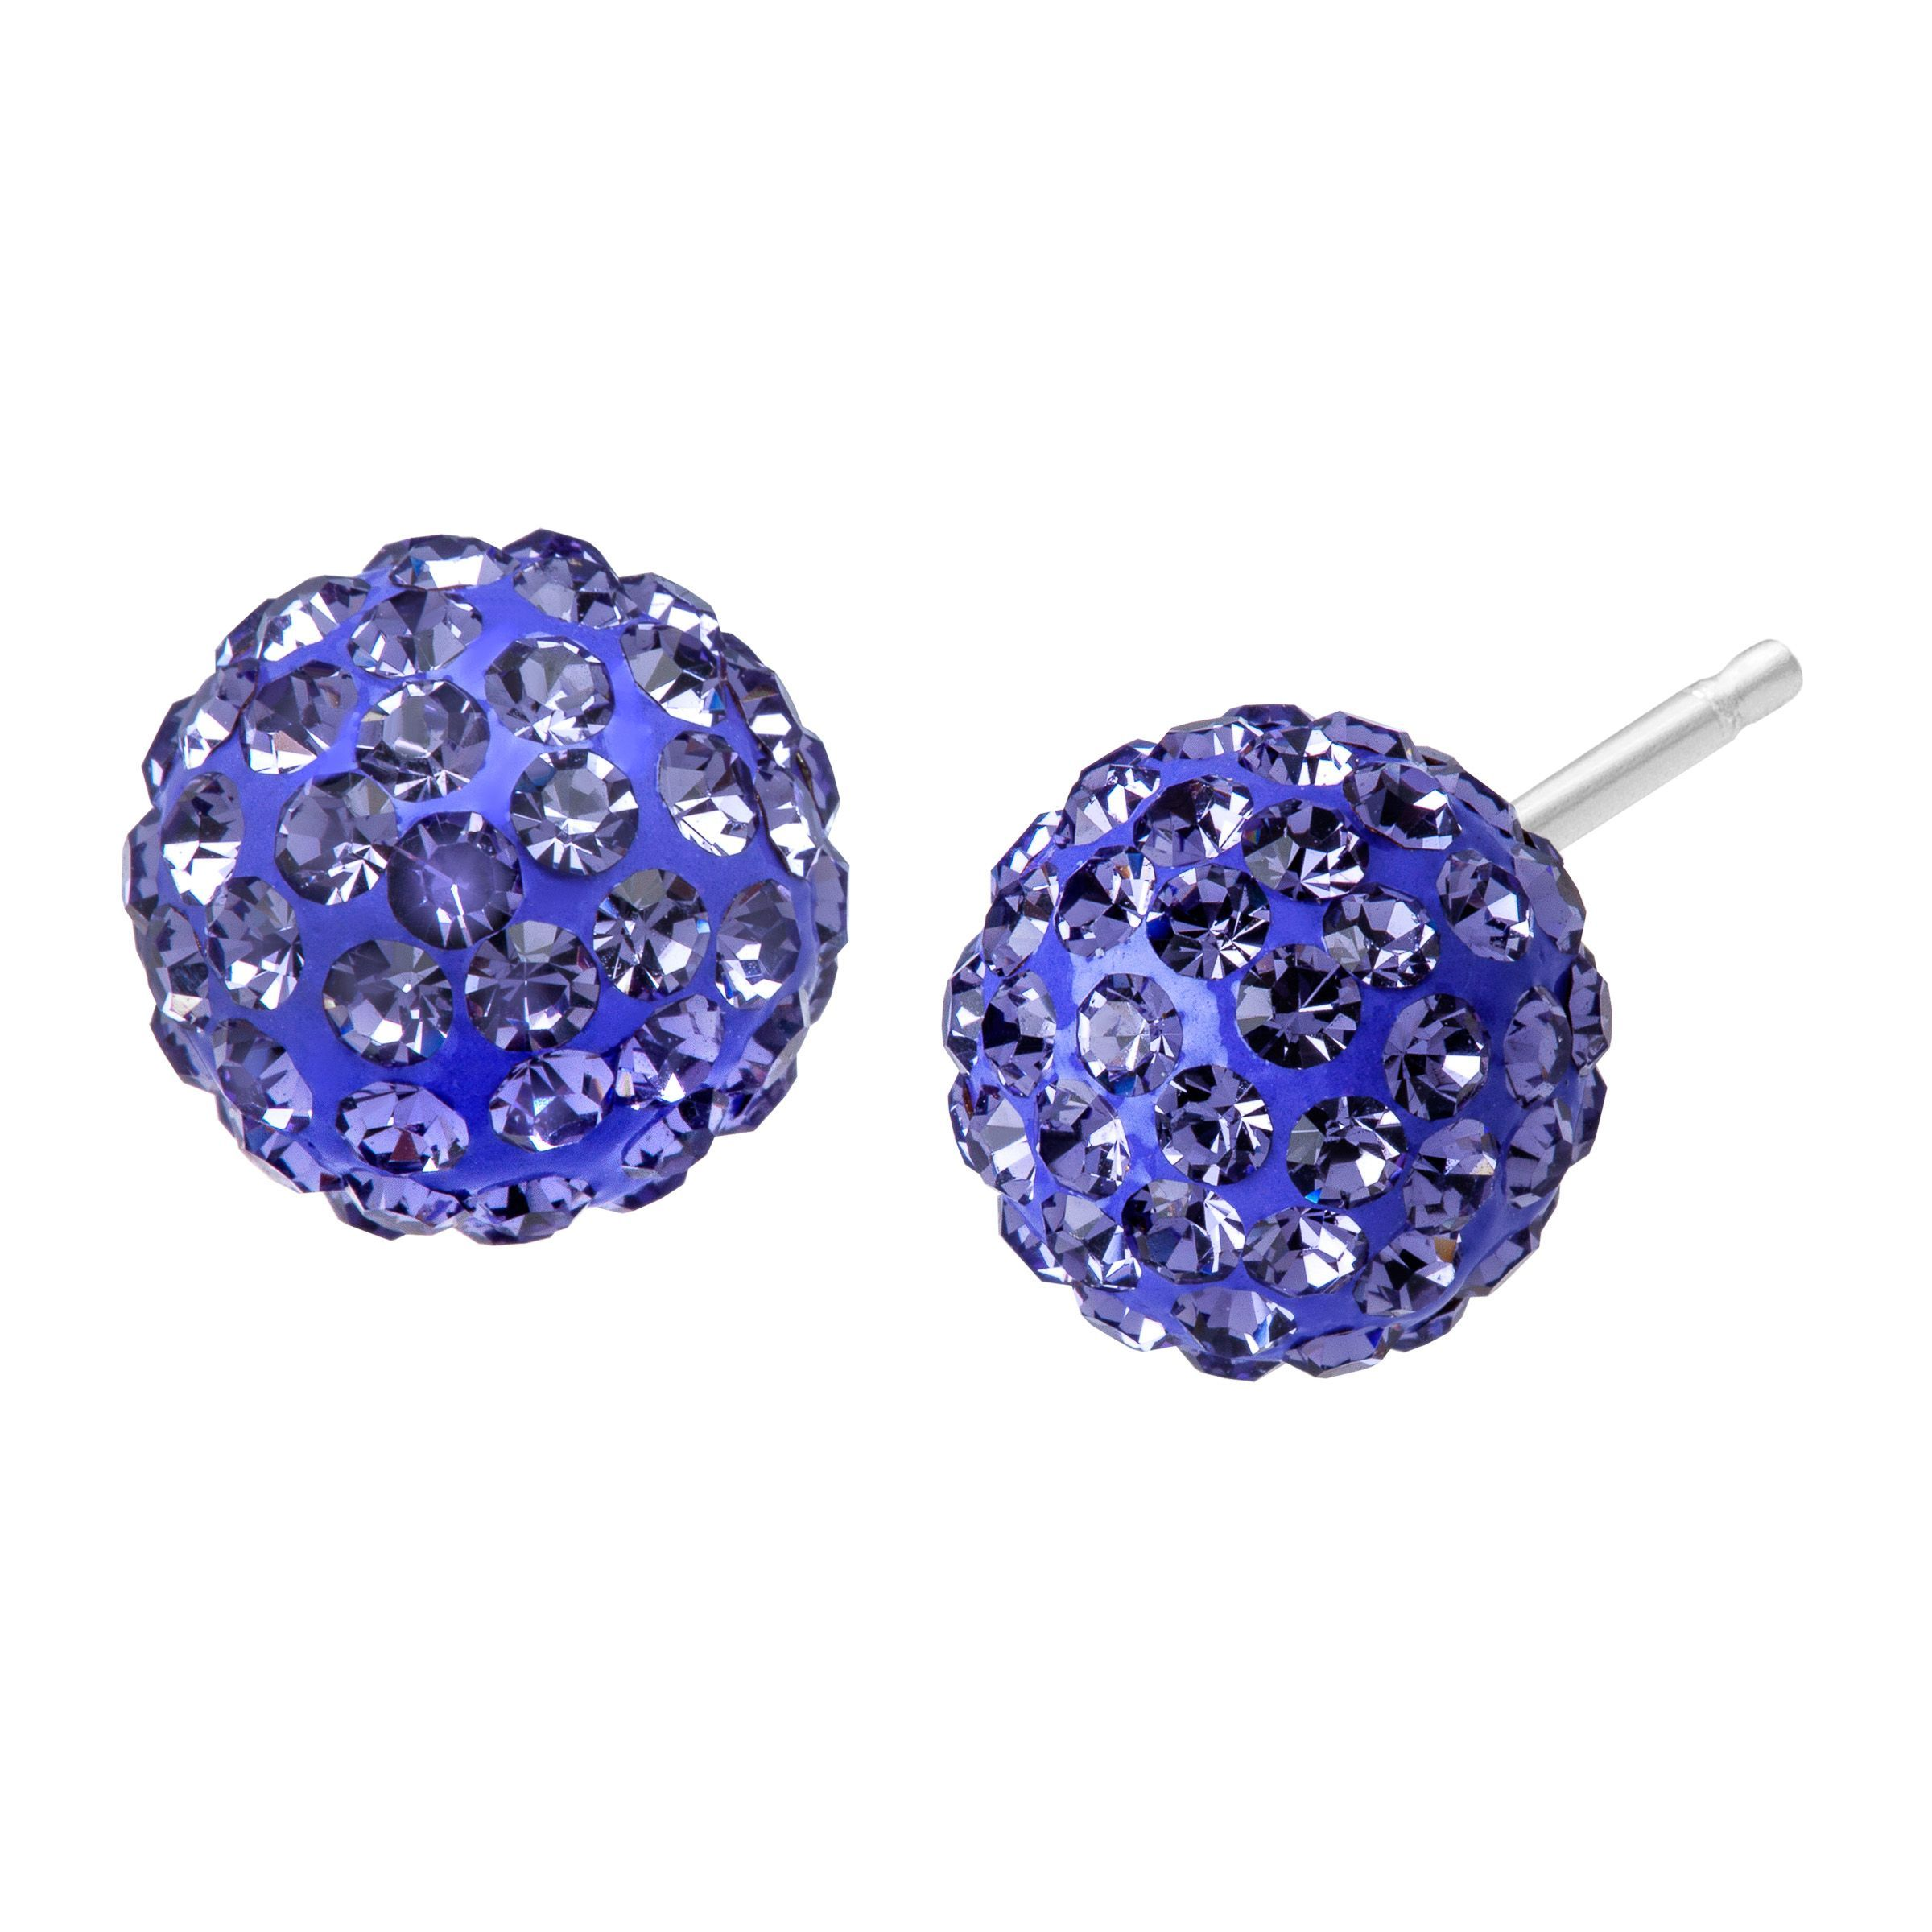 5f342b5da Details about Crystaluxe Ball Stud Earrings w/ Purple Swarovski Crystals in  Sterling Silver